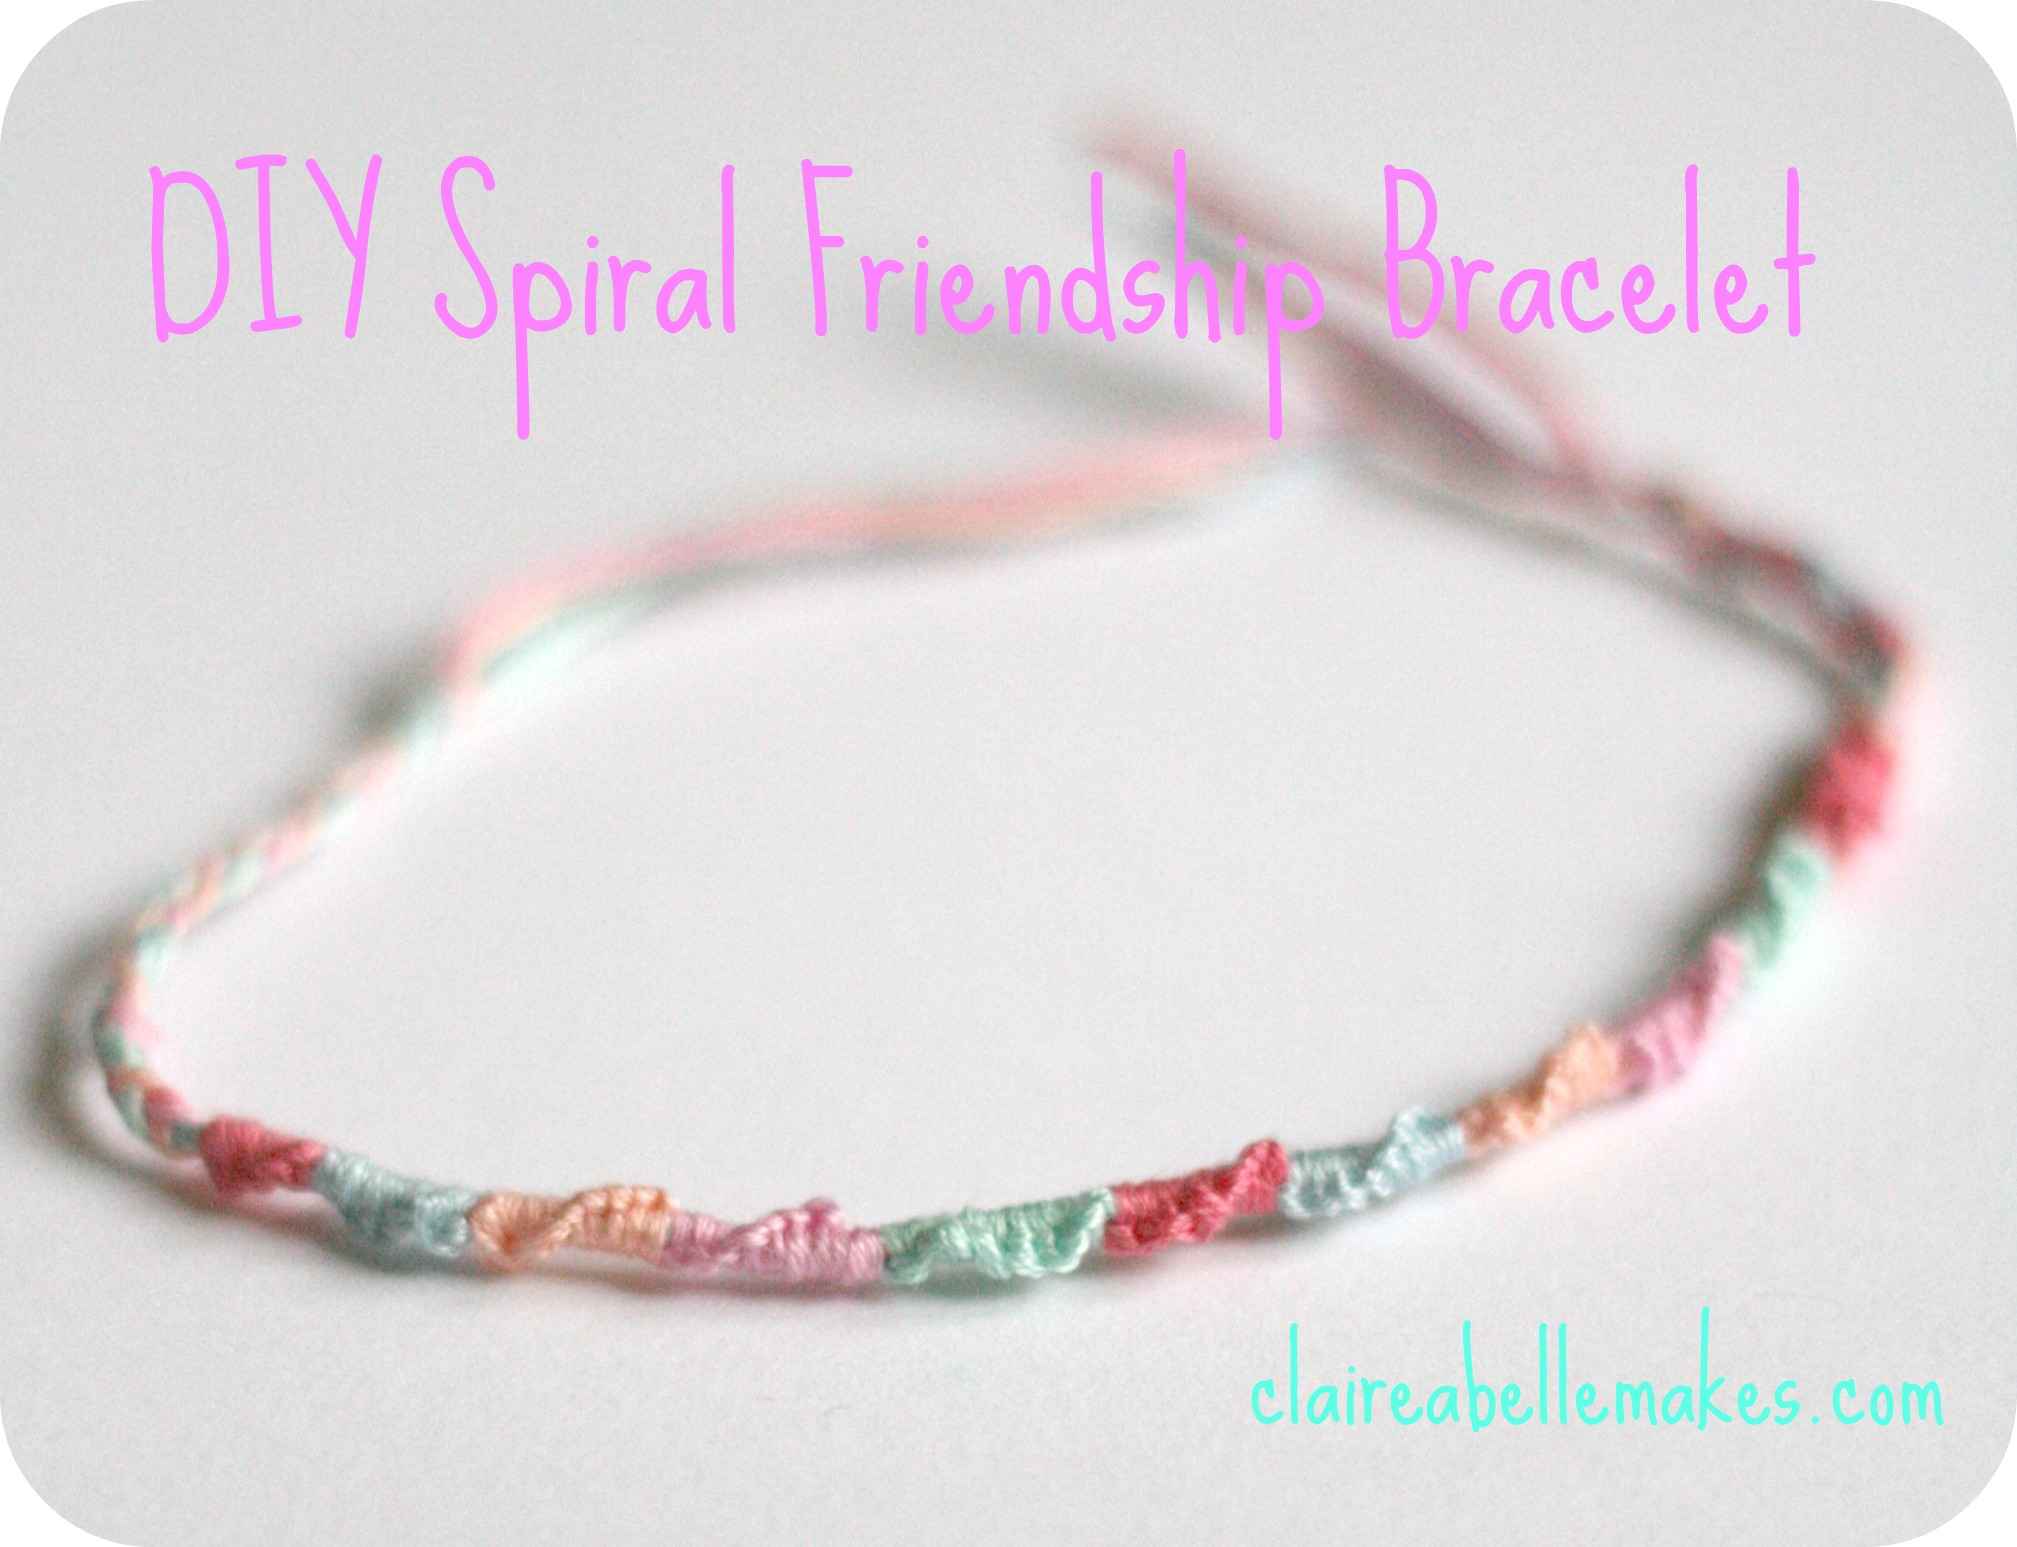 diy mondays something embroidery bracelet knotted bracelets thread friendship tag make